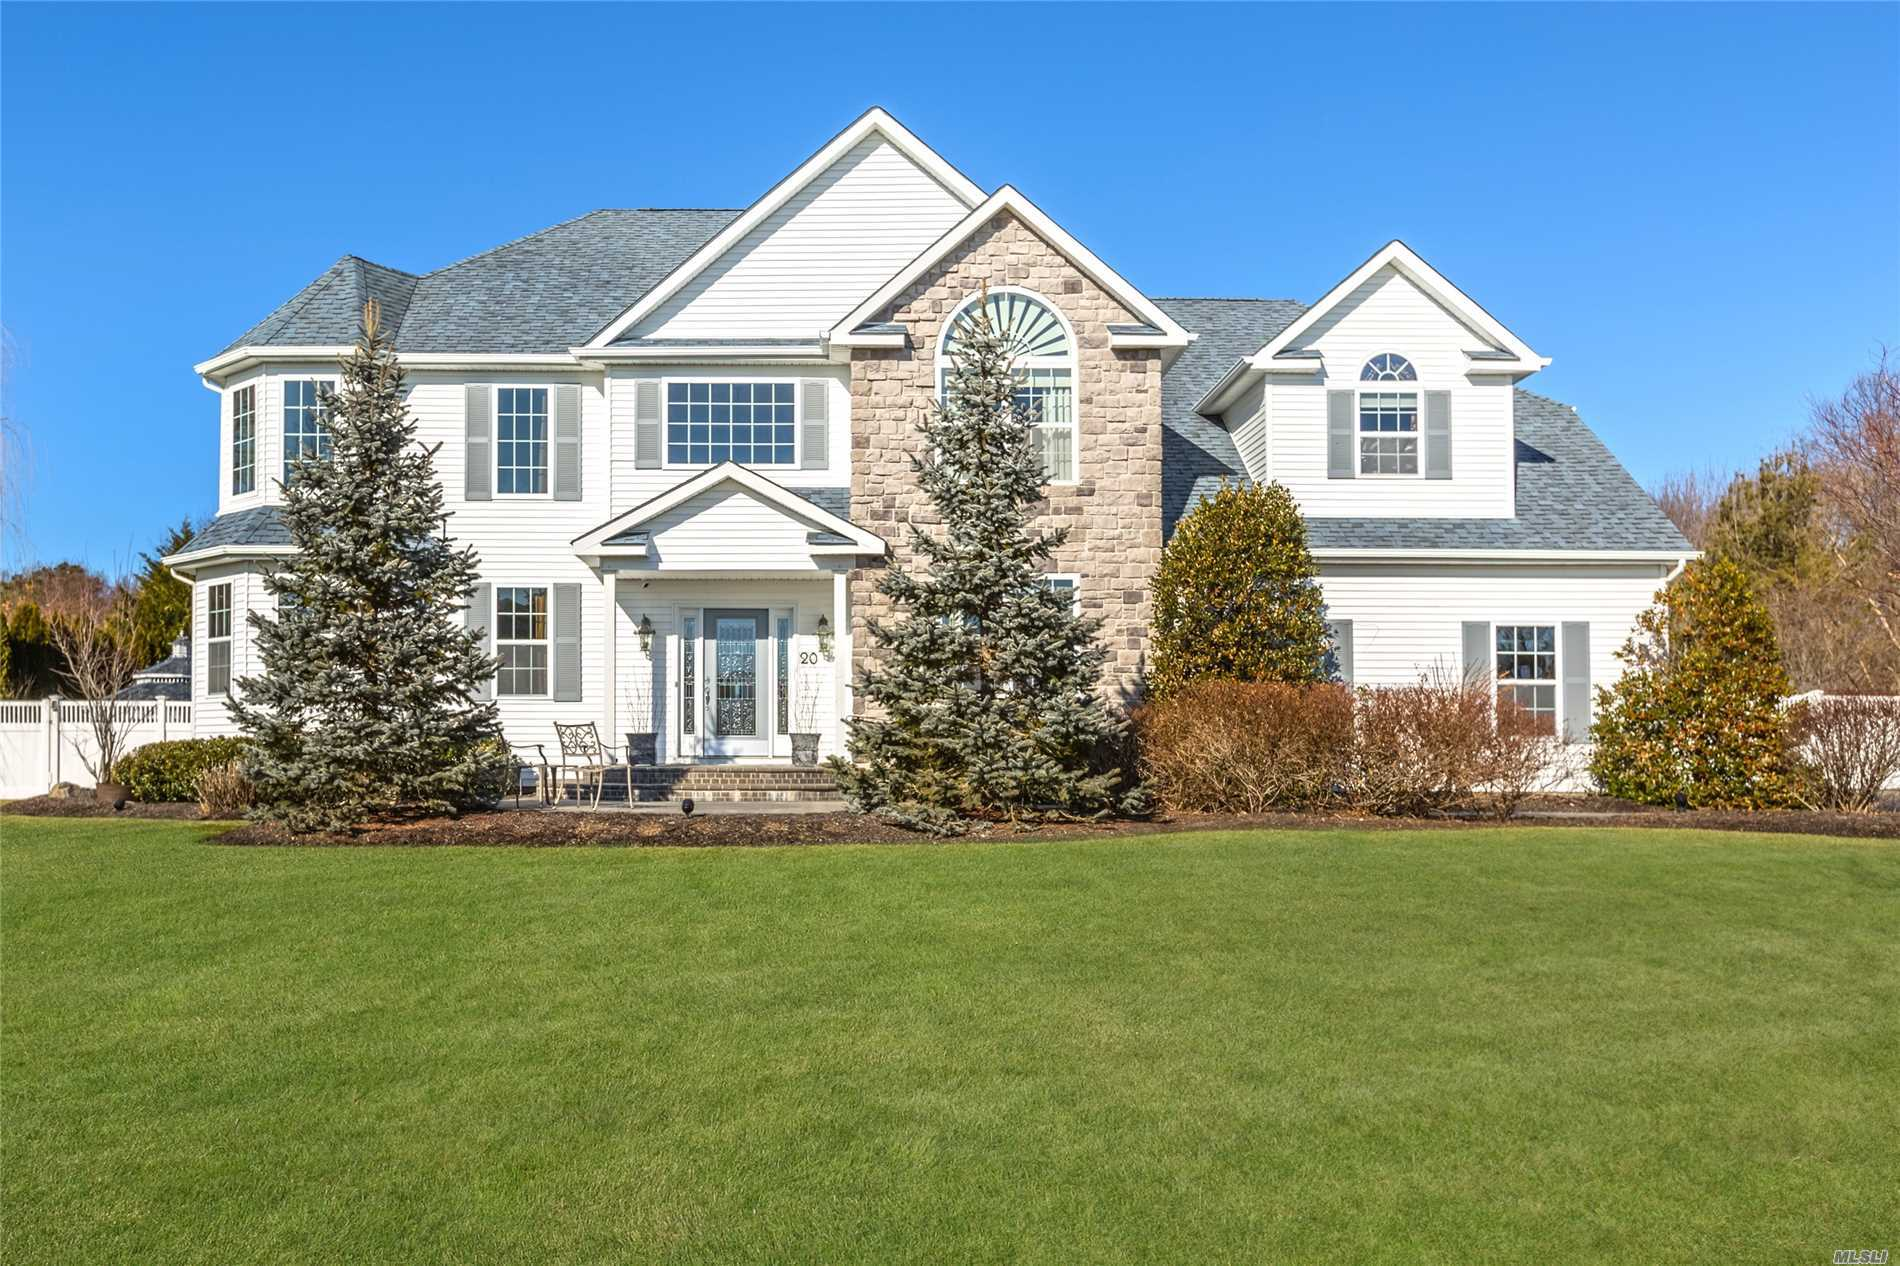 Come See This Stunning Post Modern Located In The Prestigious Country Manors Development. This Home Has It All! Updates Galore And A Backyard To Die For! Yard Has Expansive, Lush Landscaping, A Heated, In-Ground Pool, And A Sanded Volleyball Court!